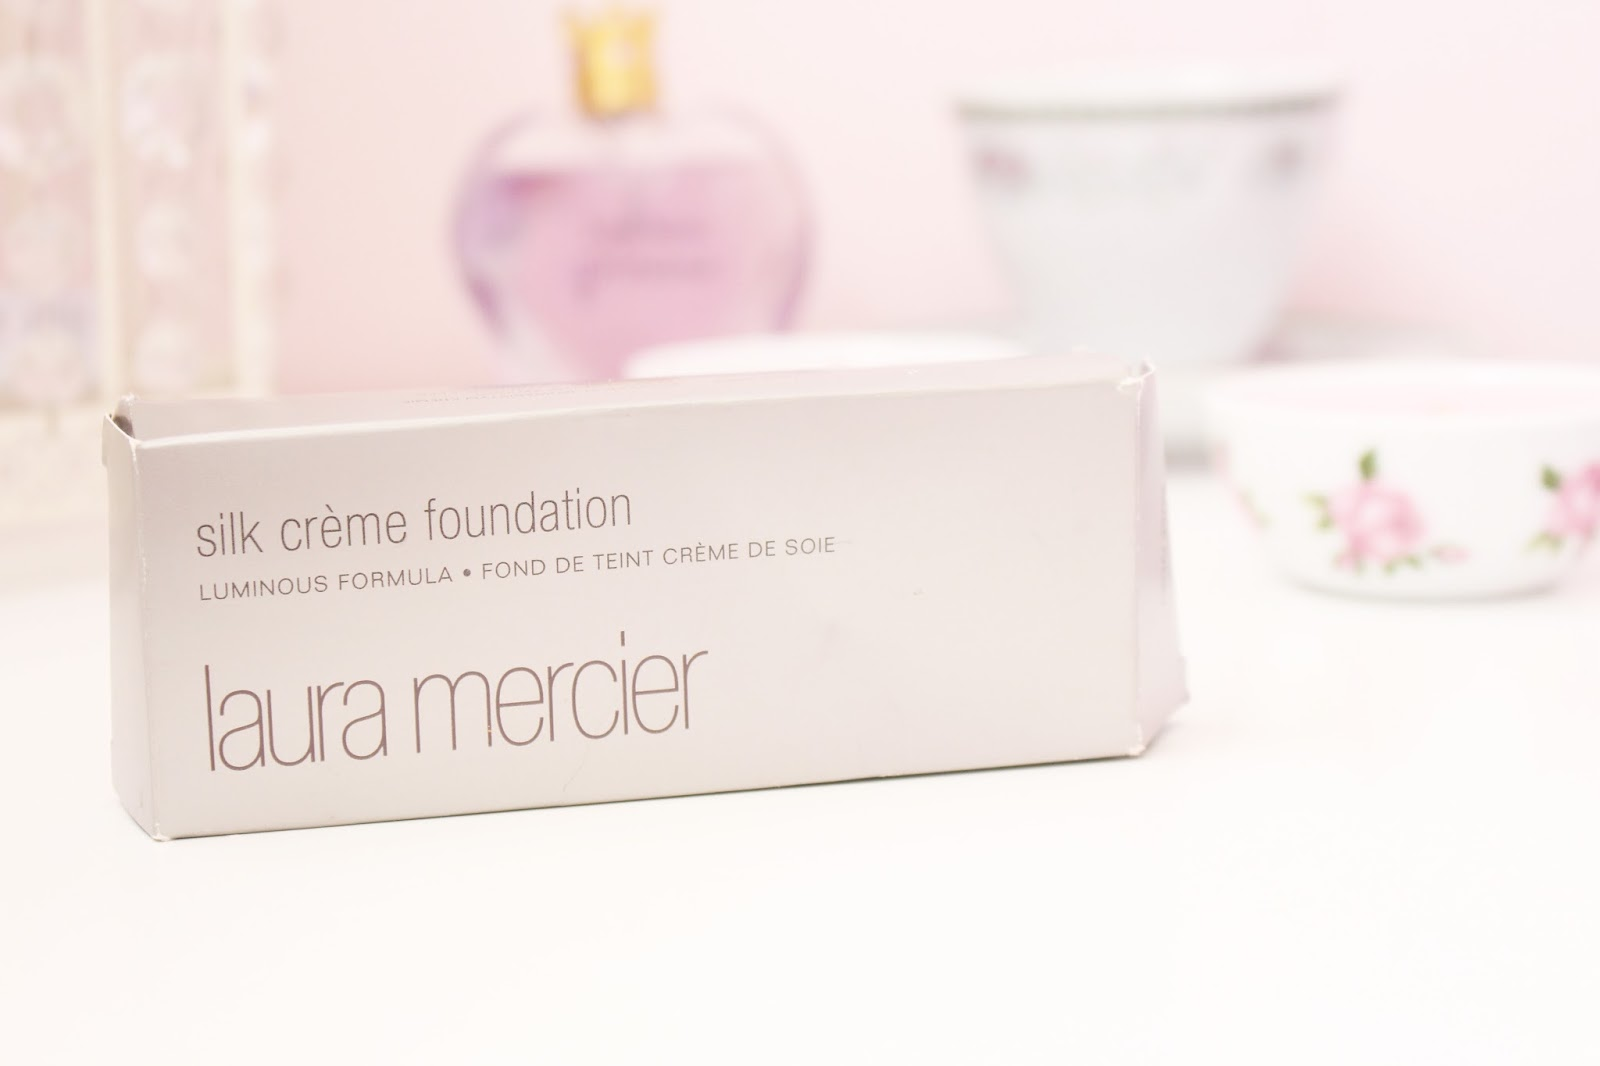 Laura Mercier Silk Creme Foundation Rose Ivory Review Blog